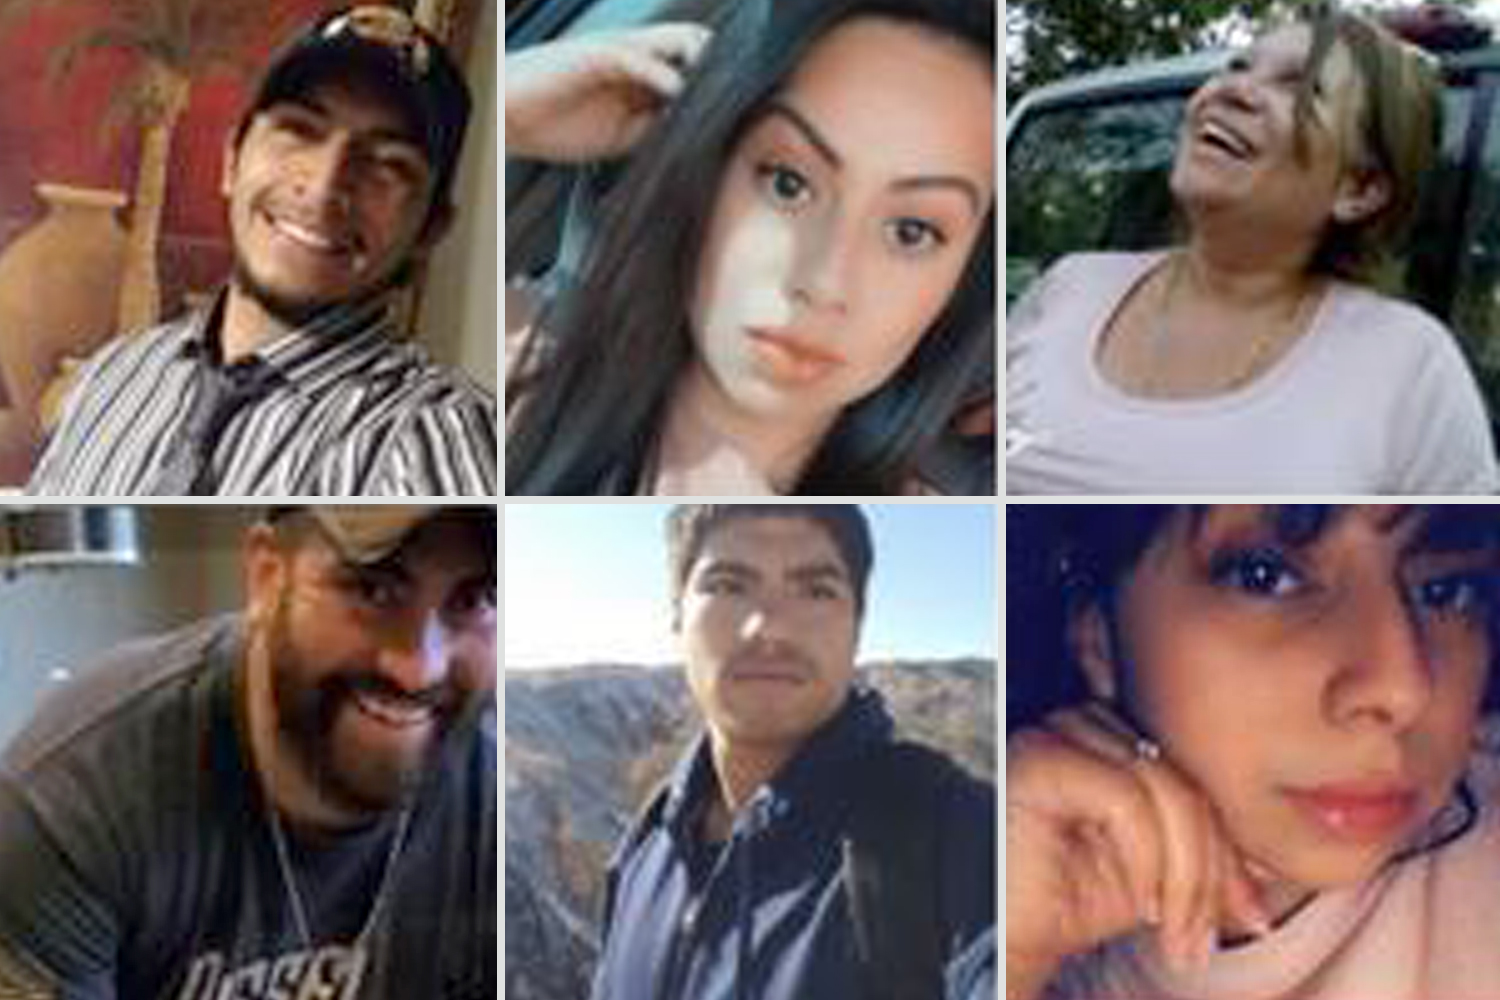 Mothers Day shooting victims